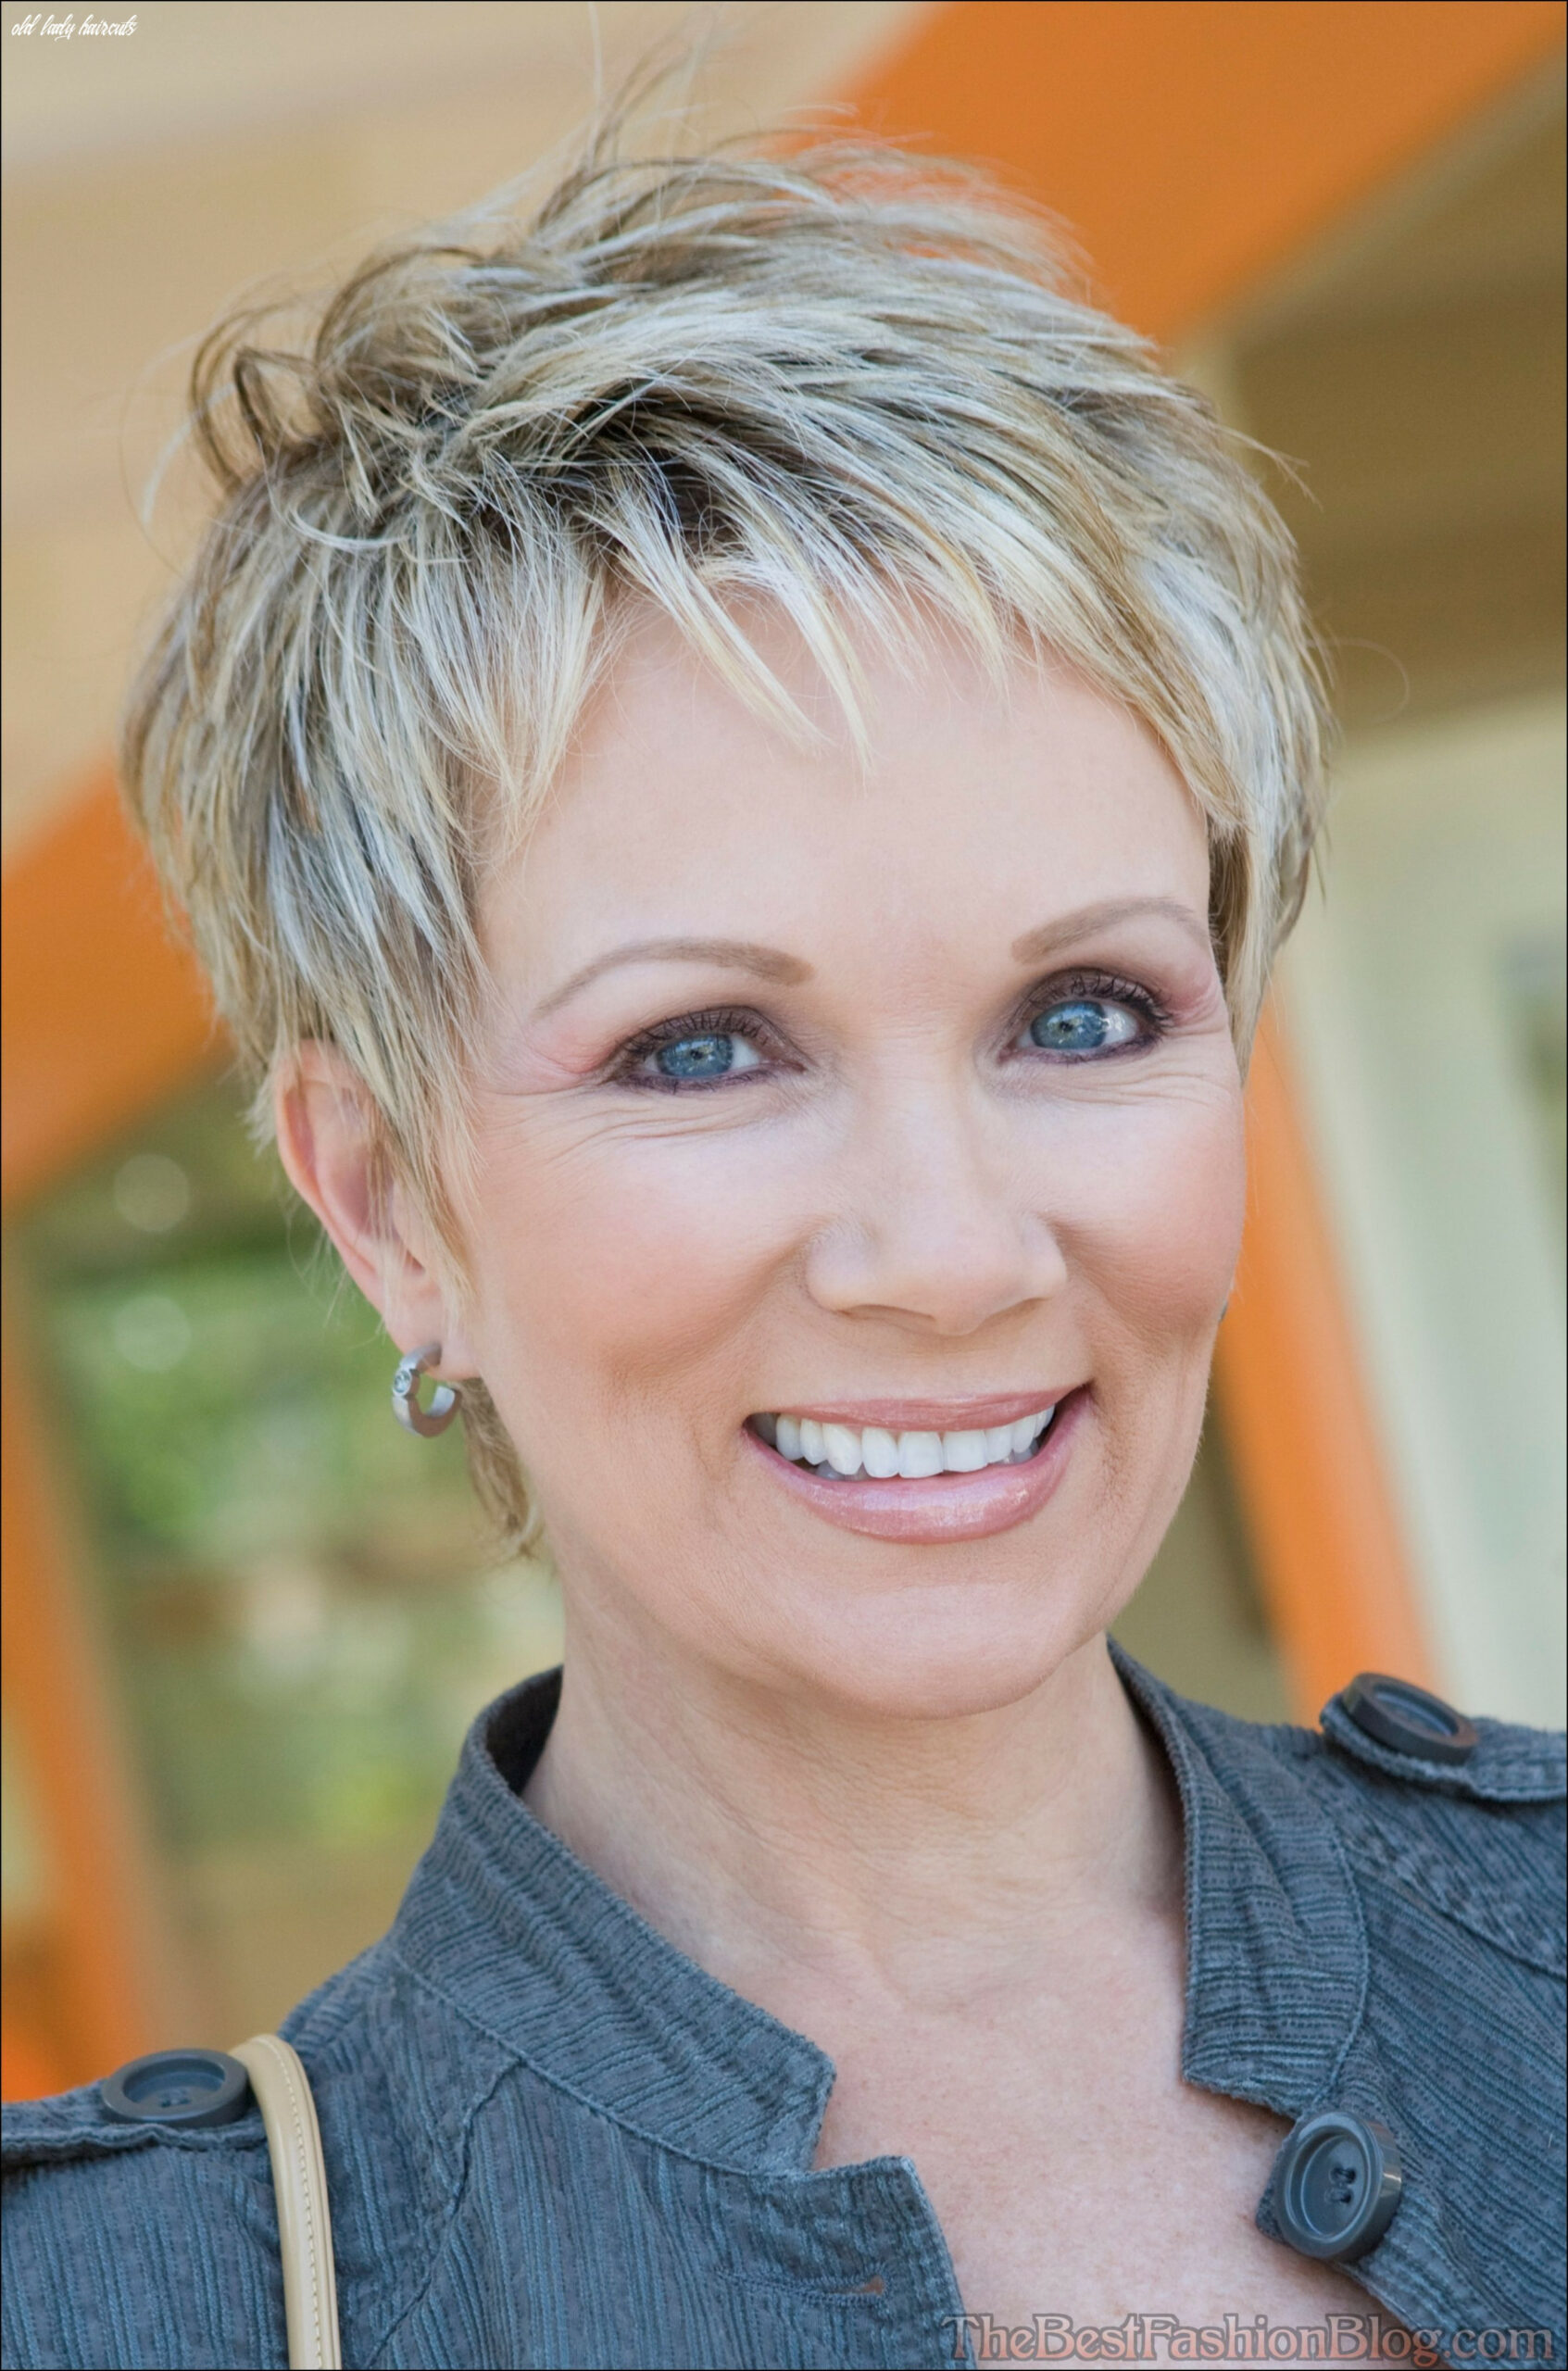 Old lady haircut | haircut for older women, hairstyles for thin